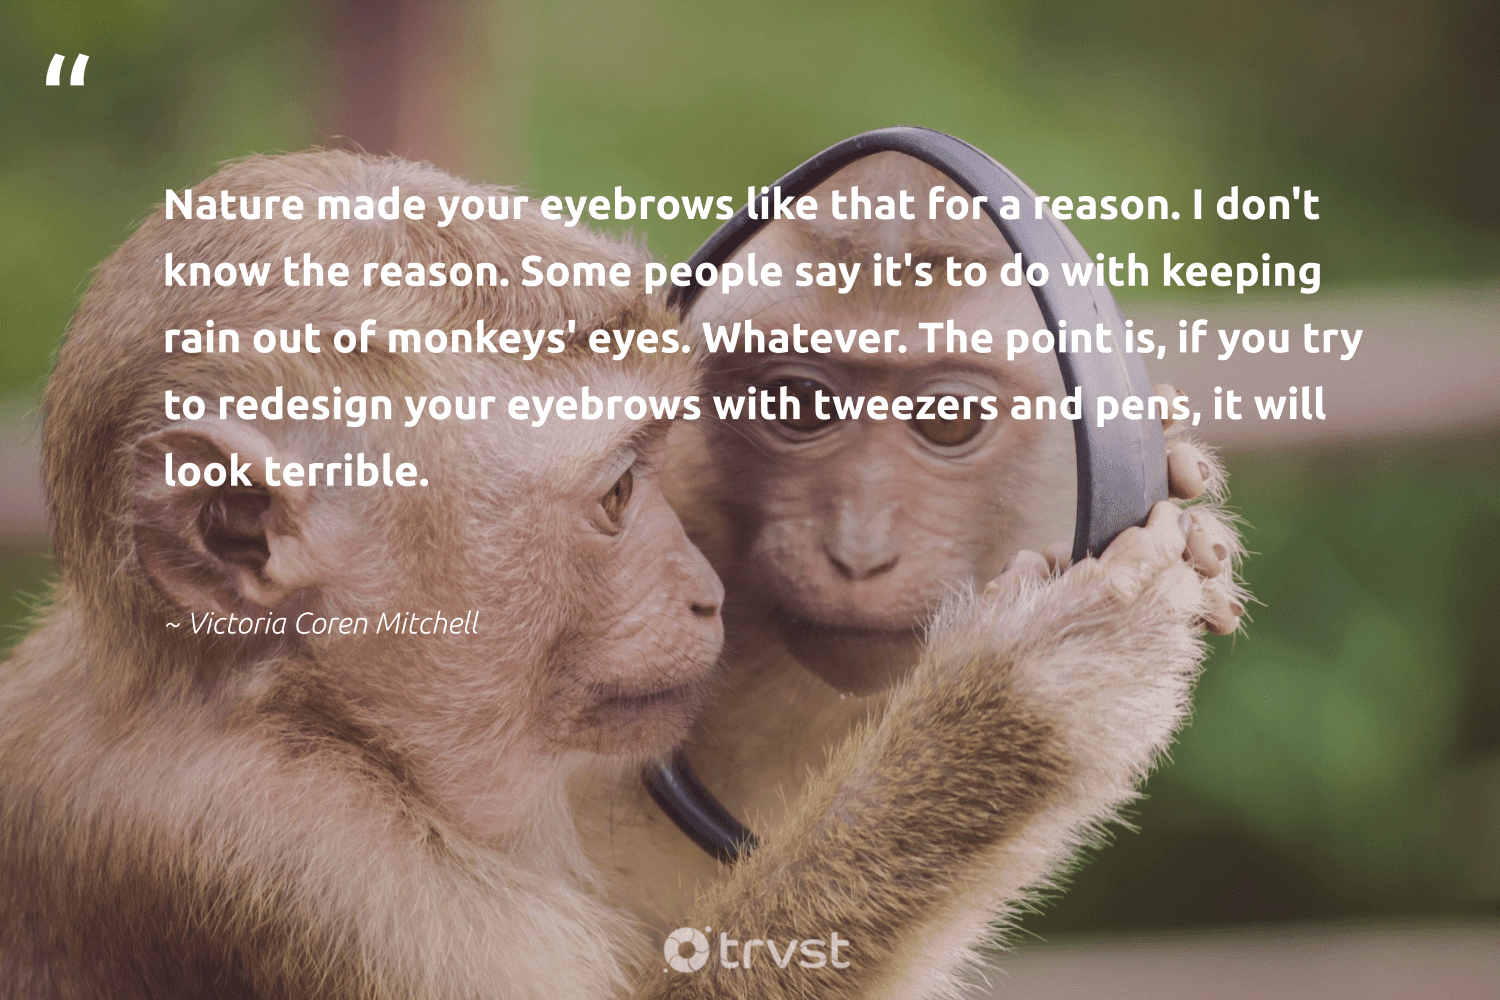 """""""Nature made your eyebrows like that for a reason. I don't know the reason. Some people say it's to do with keeping rain out of monkeys' eyes. Whatever. The point is, if you try to redesign your eyebrows with tweezers and pens, it will look terrible.""""  - Victoria Coren Mitchell #trvst #quotes #nature #monkeys #earth #monkey #wildernessnation #dosomething #conservation #perfectnature #sustainable #changetheworld"""